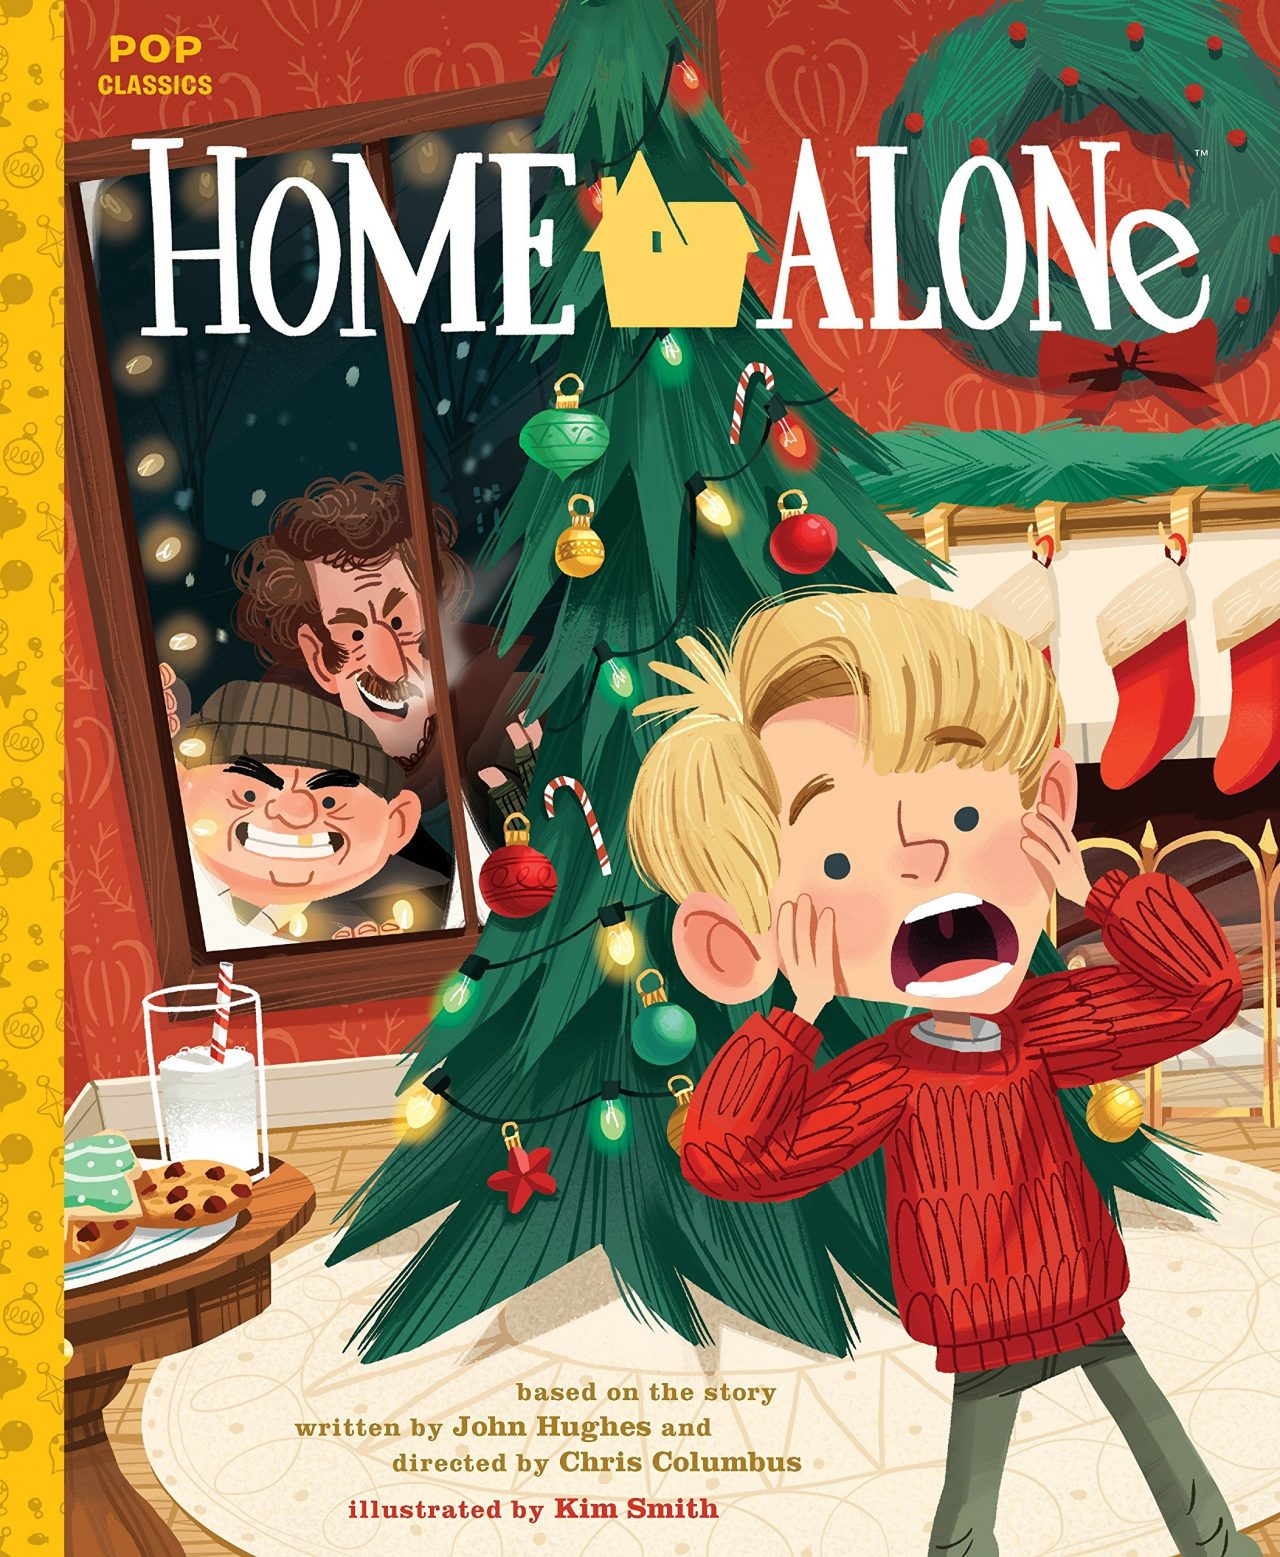 'Home Alone' Reimagined as an Illustrated Storybook